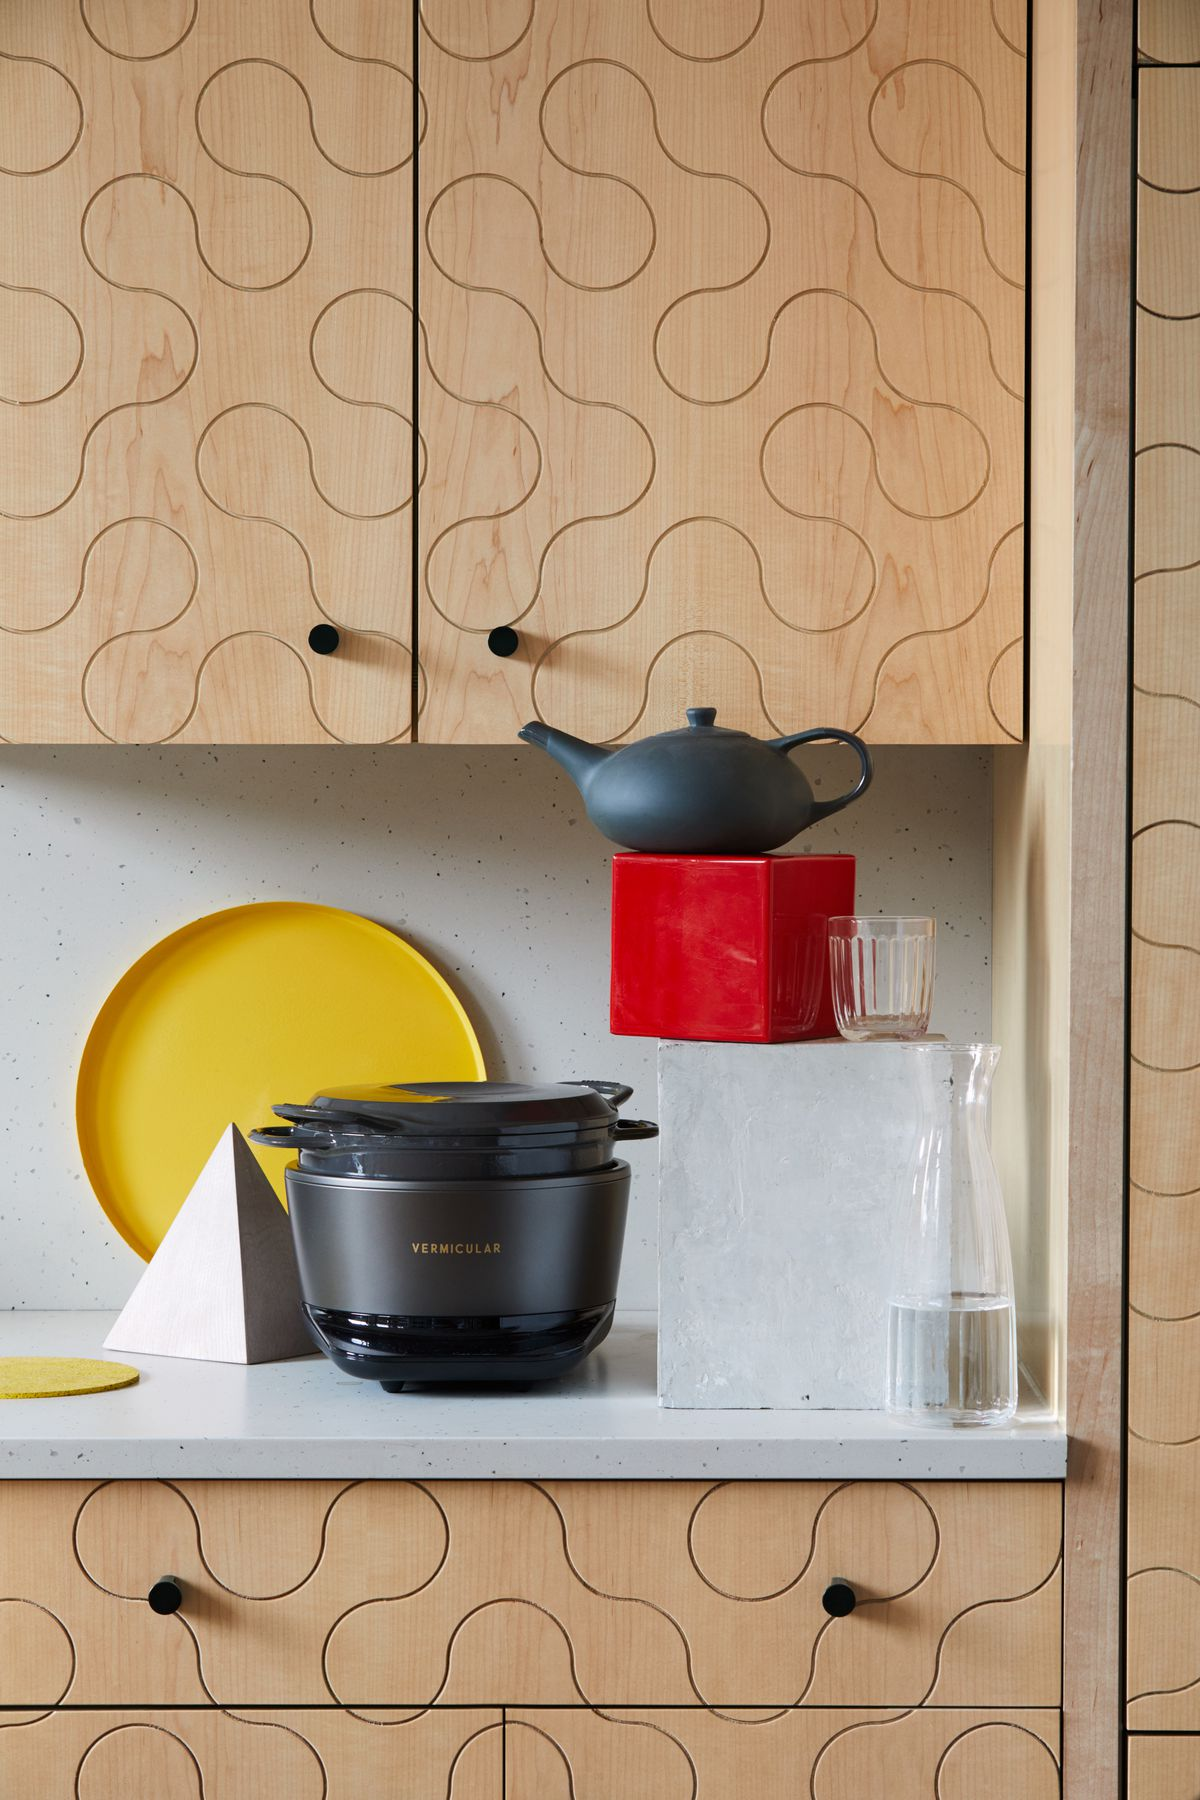 Cookware, a teapot, and a tumbler arranged on a kitchen countertop.